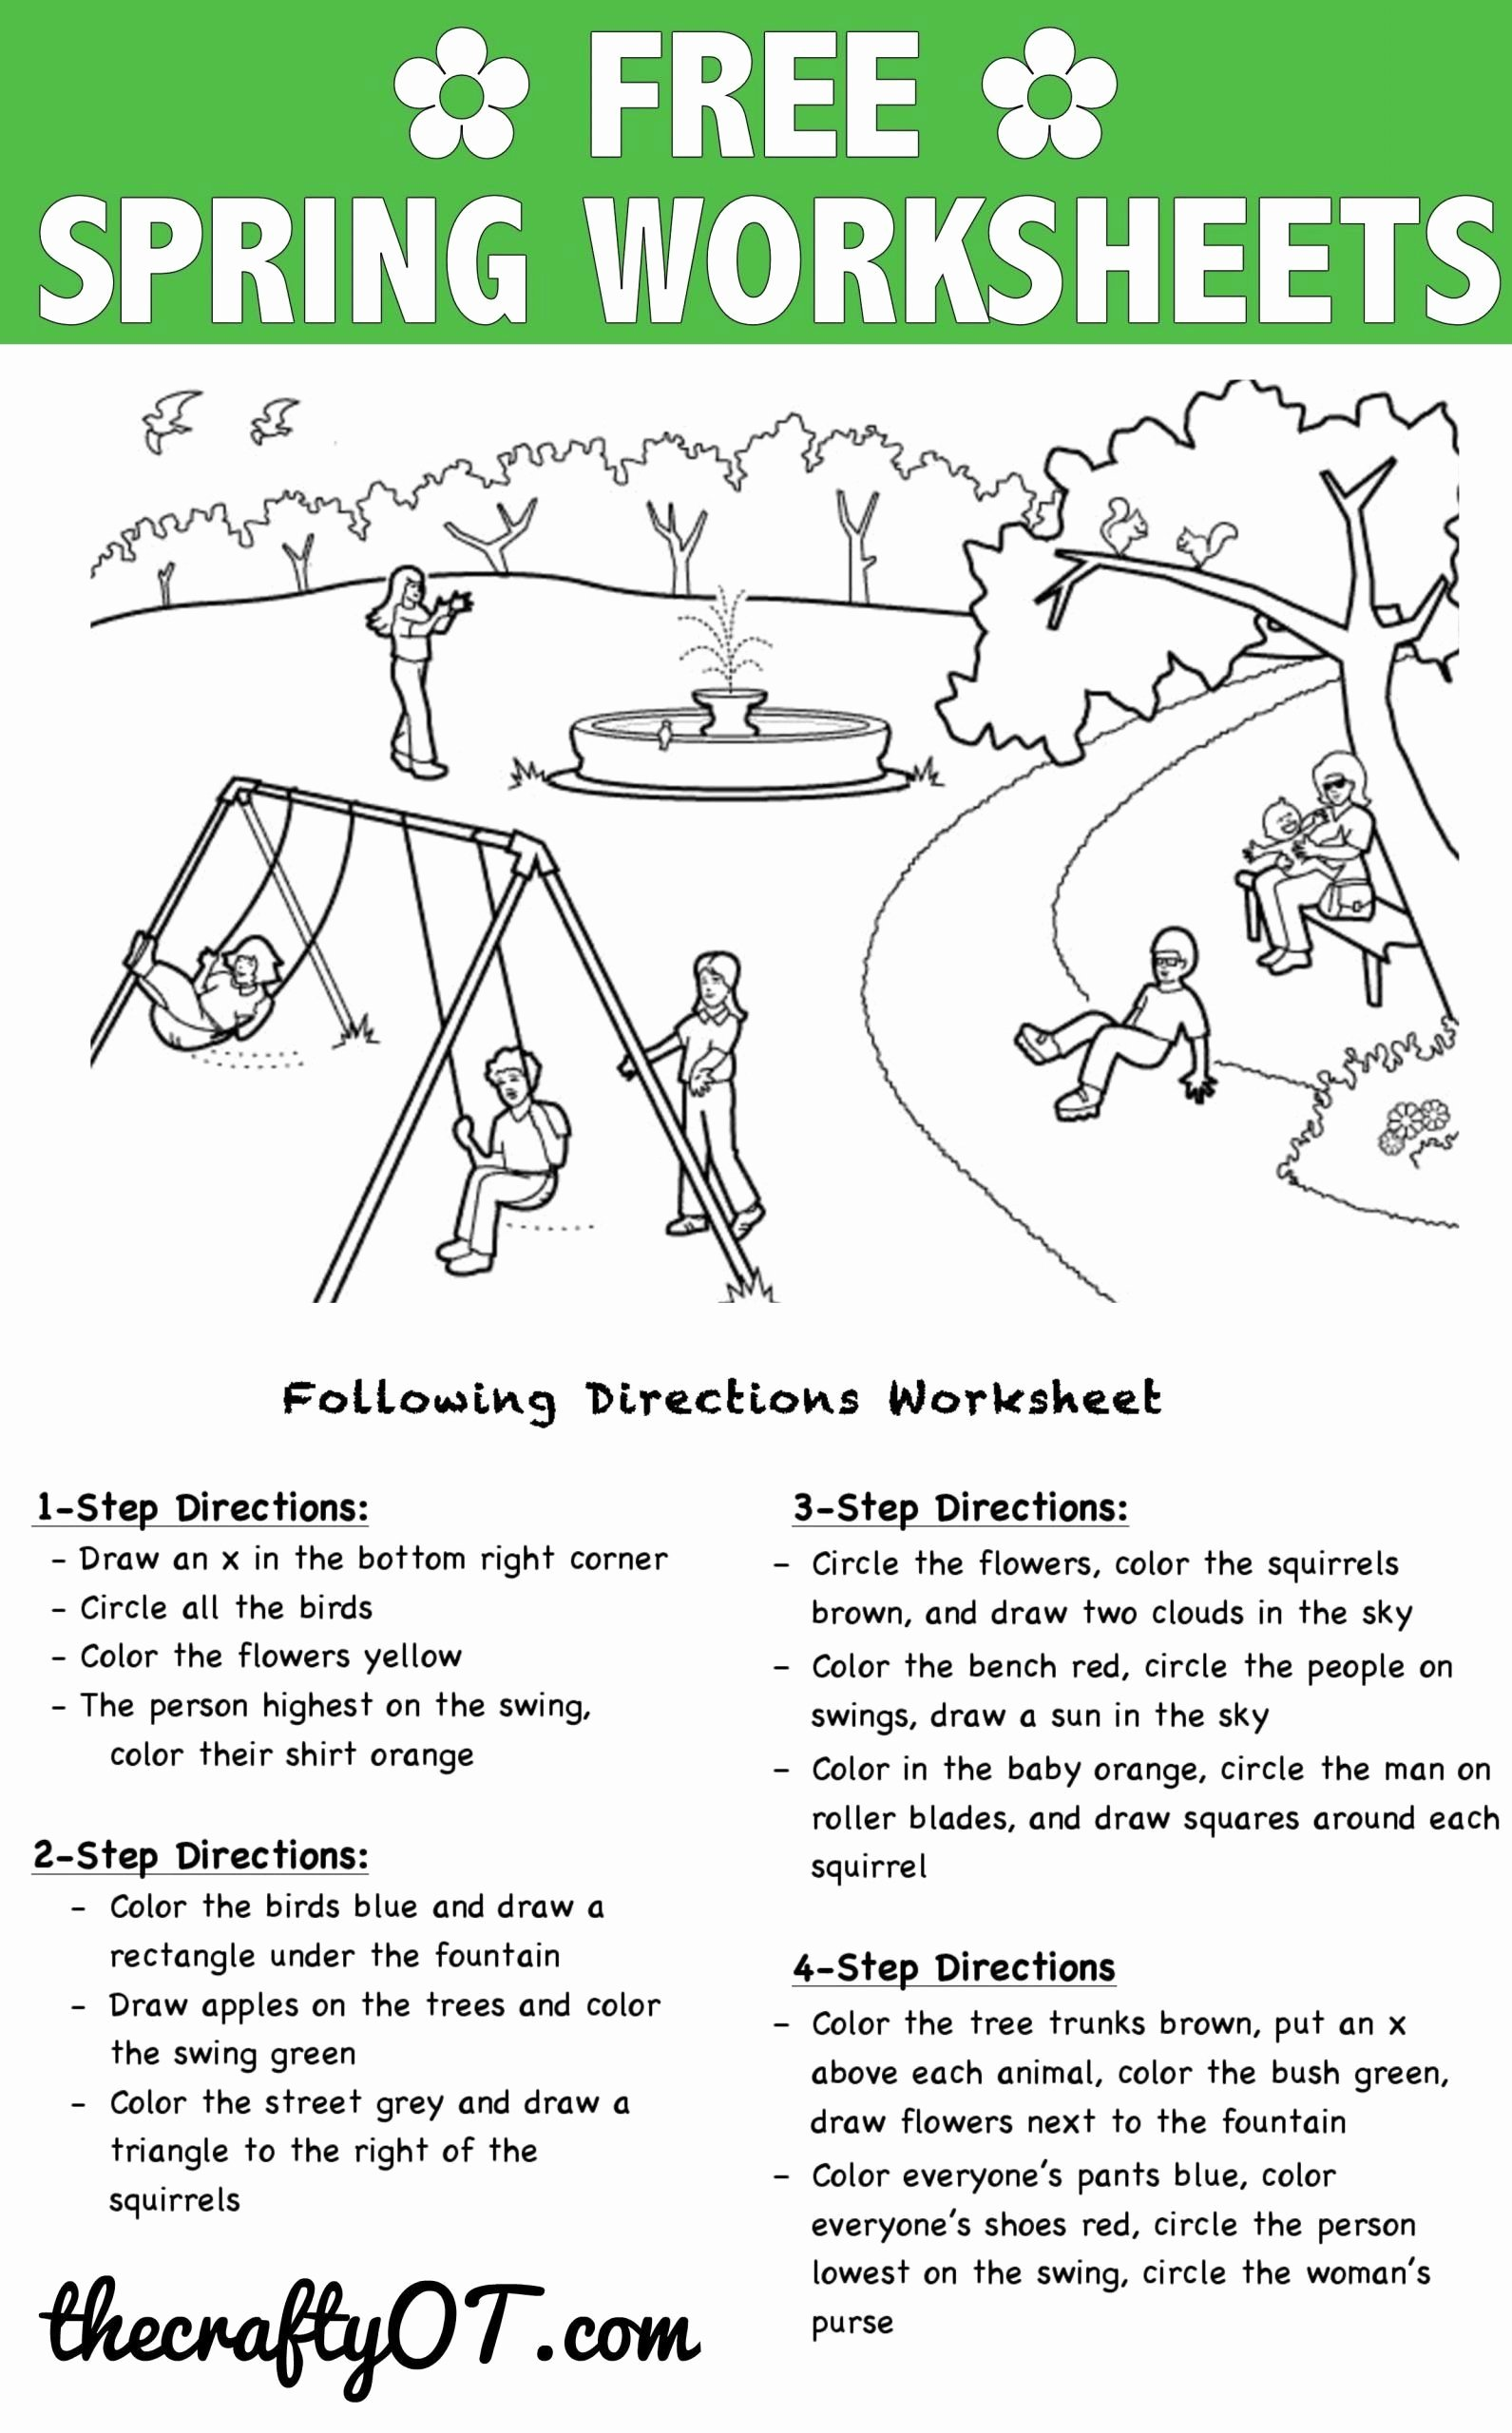 Following Directions Worksheet Third Grade Kids Following Directions Worksheet Third Grade Idea by Brooke